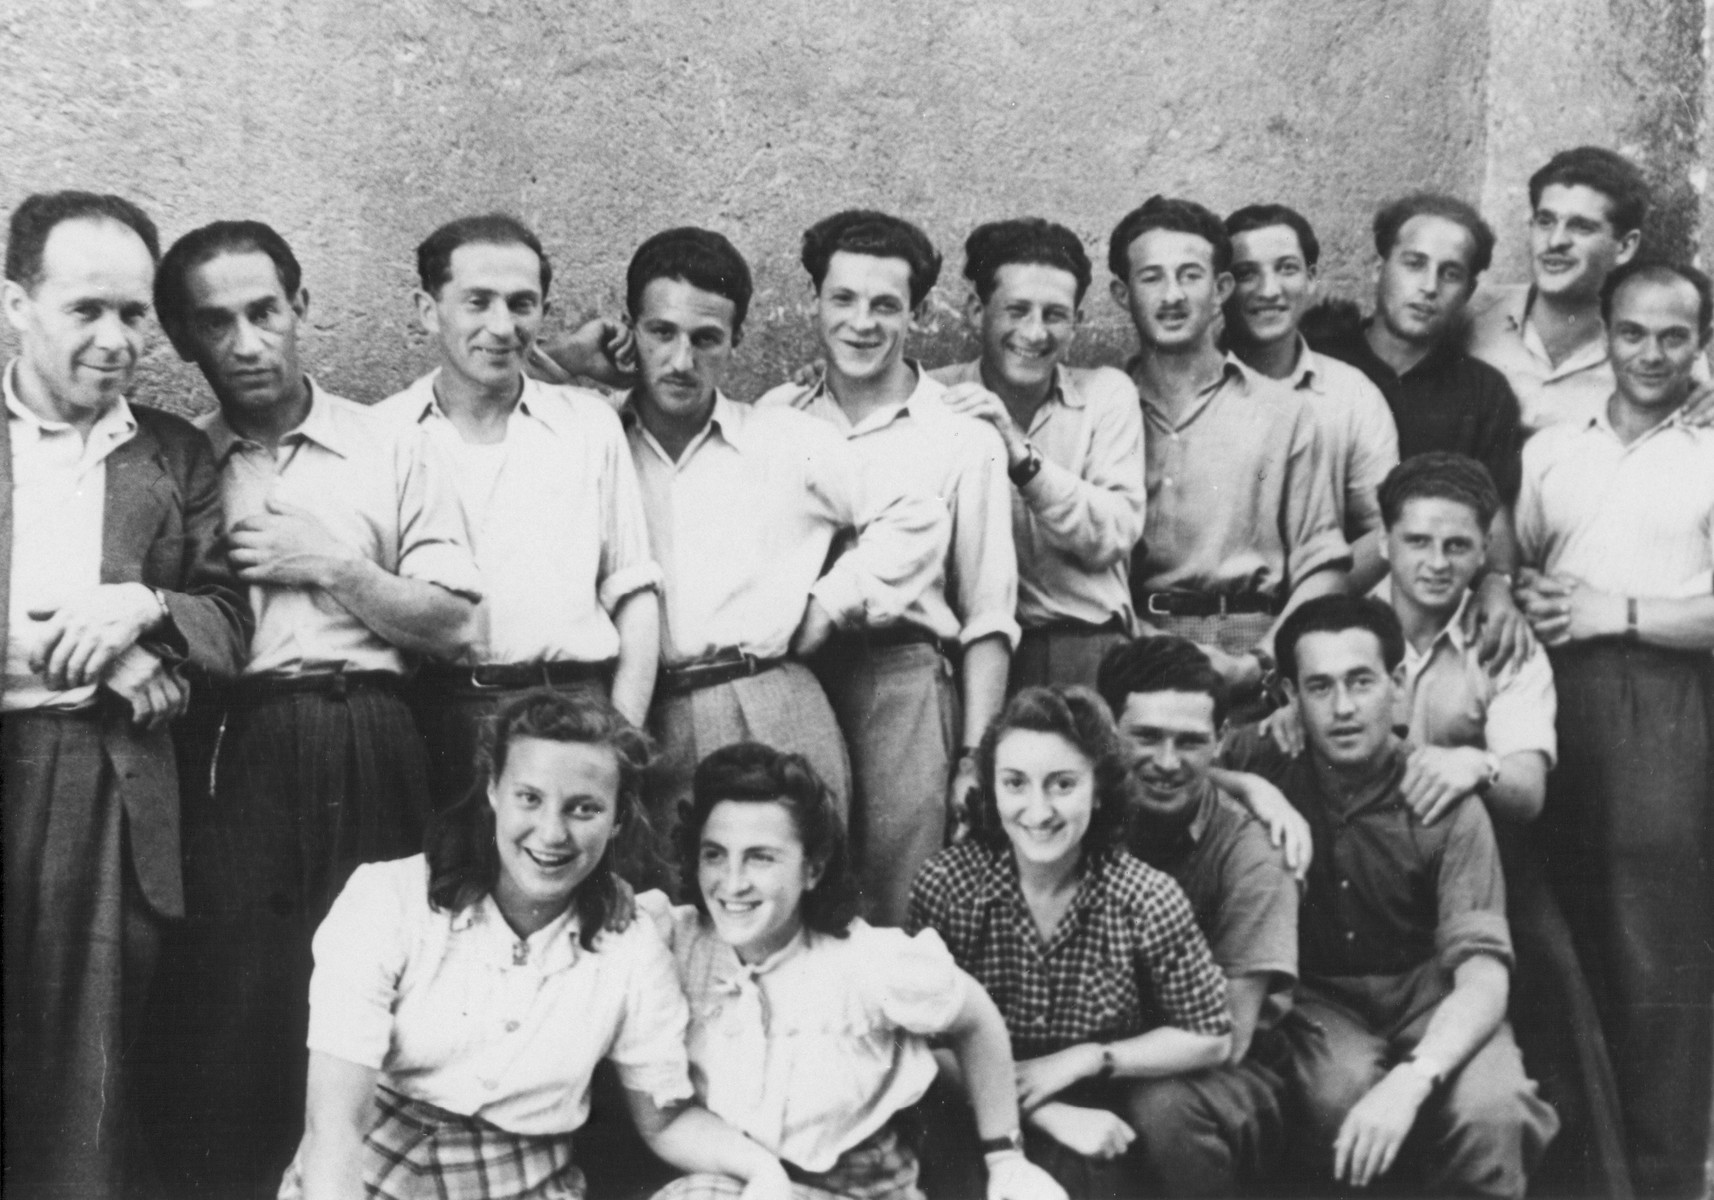 Members of the Nekama group during their stay in Italy while waiting to immigrate to Israel.